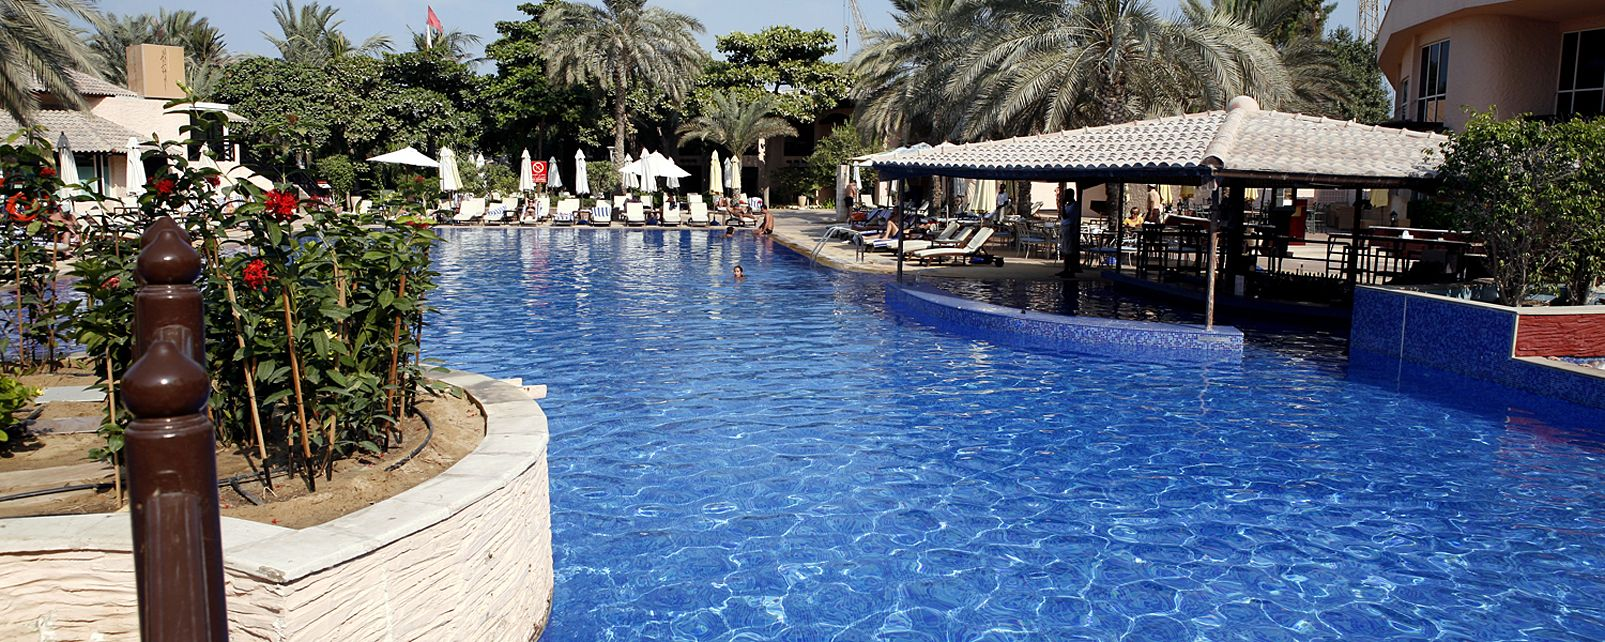 Hôtel Habtoor Grand Resort and Spa